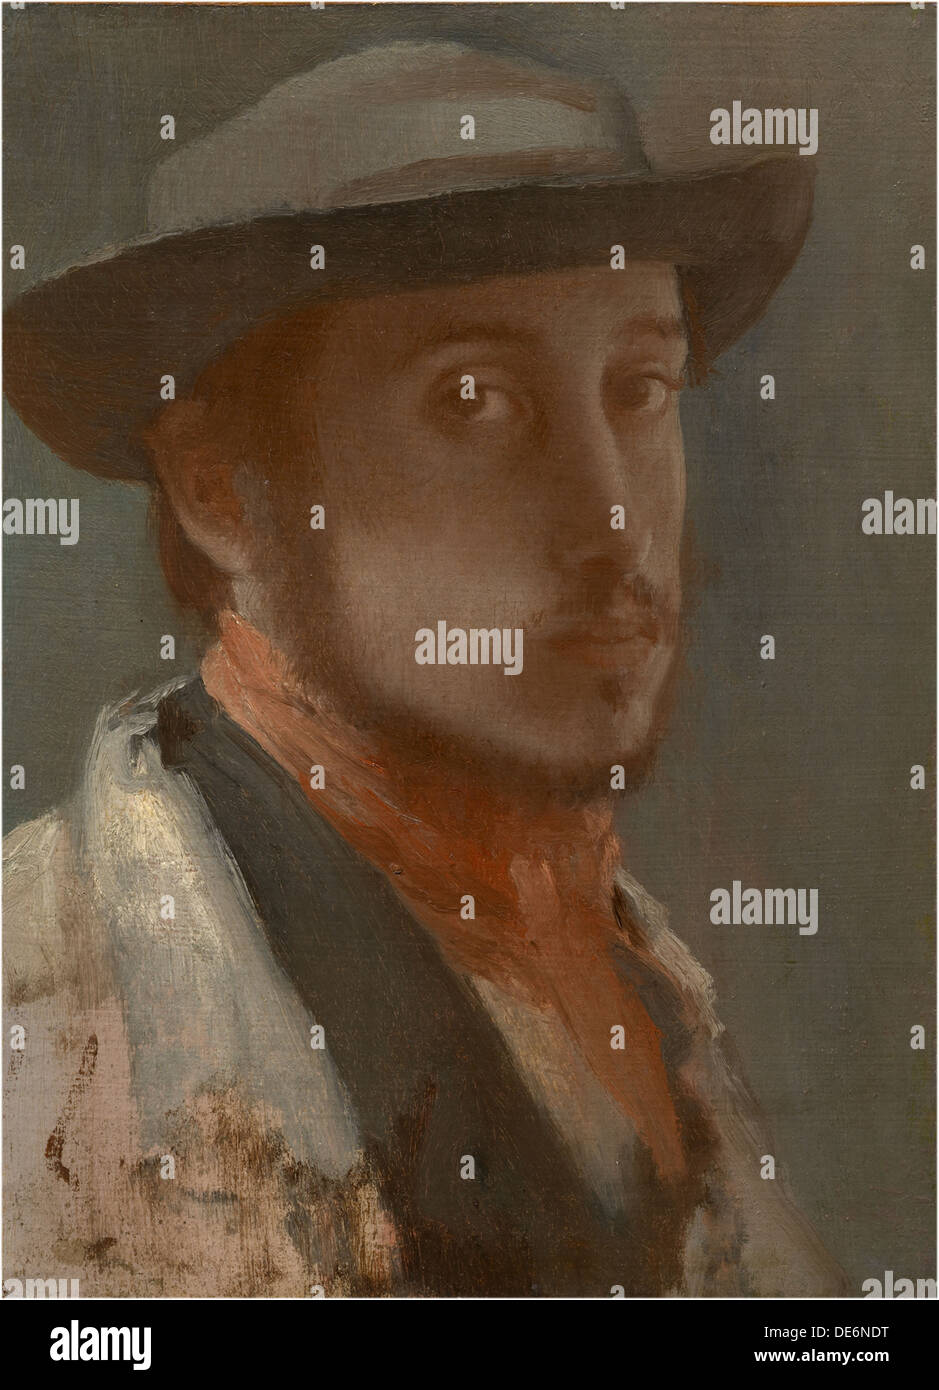 Self-Portrait, c. 1858. Artist: Degas, Edgar (1834-1917) - Stock Image